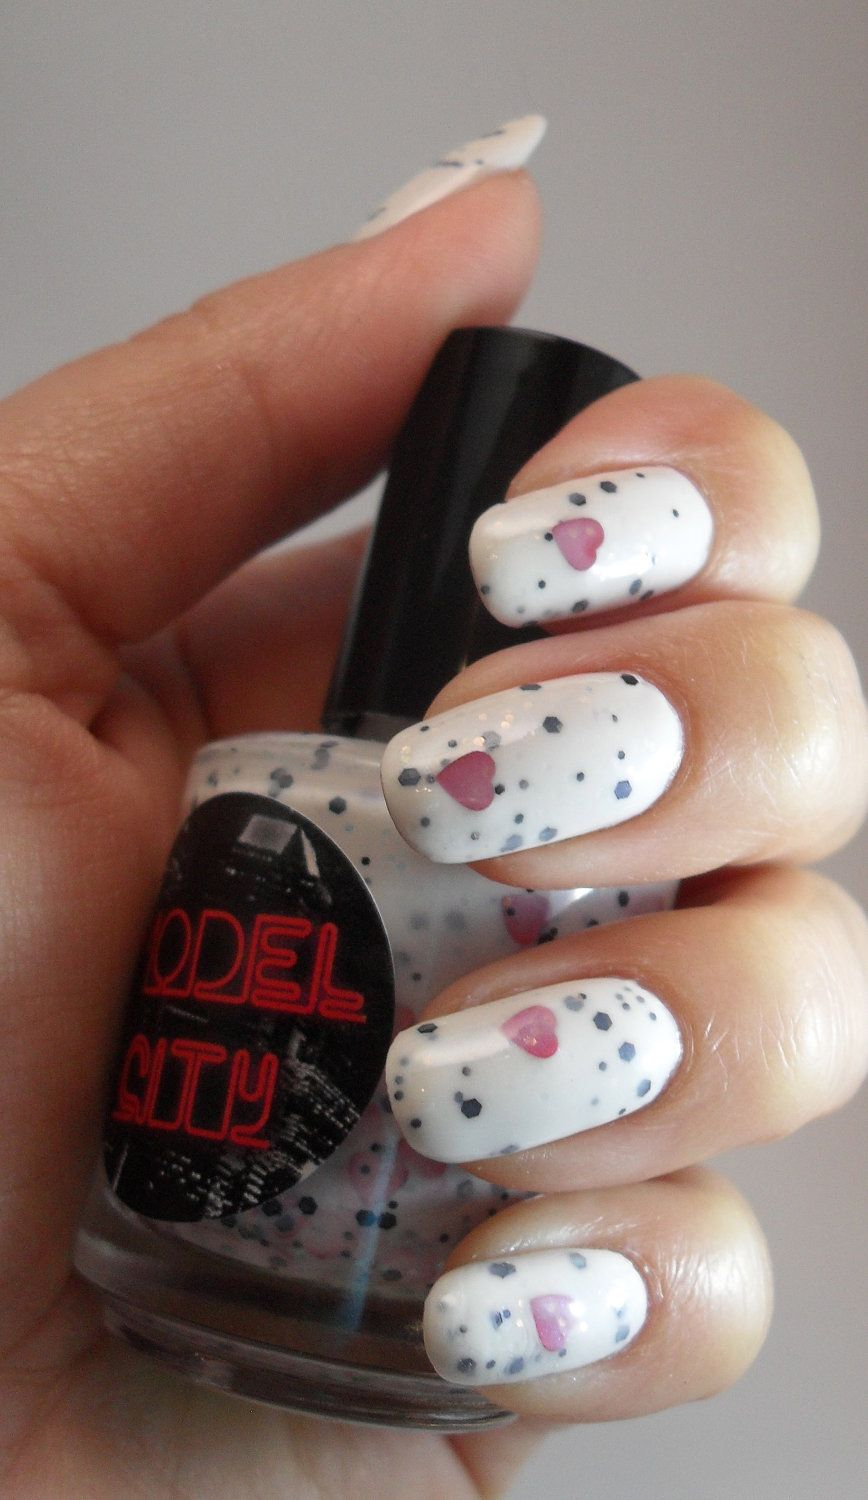 Limited Edition: Queen of Hearts!! Model City Pollish ♥   Next to buy! #nails #polish #indie